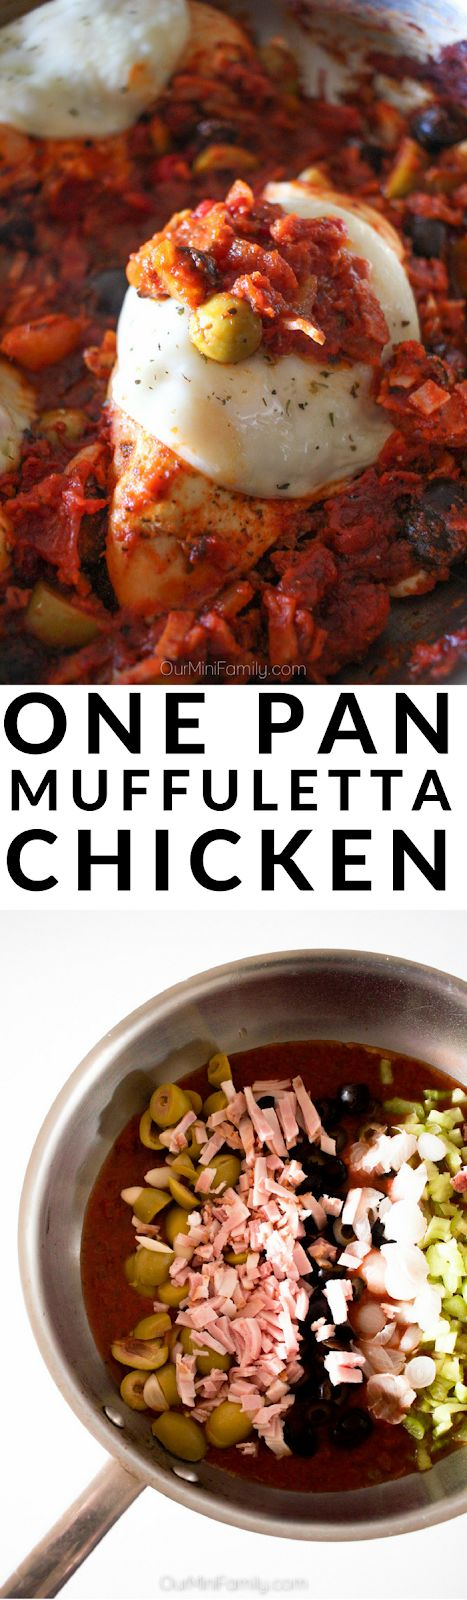 Try this one pan muffuletta chicken recipe inspired by the New Orleans classic sandwich! ad